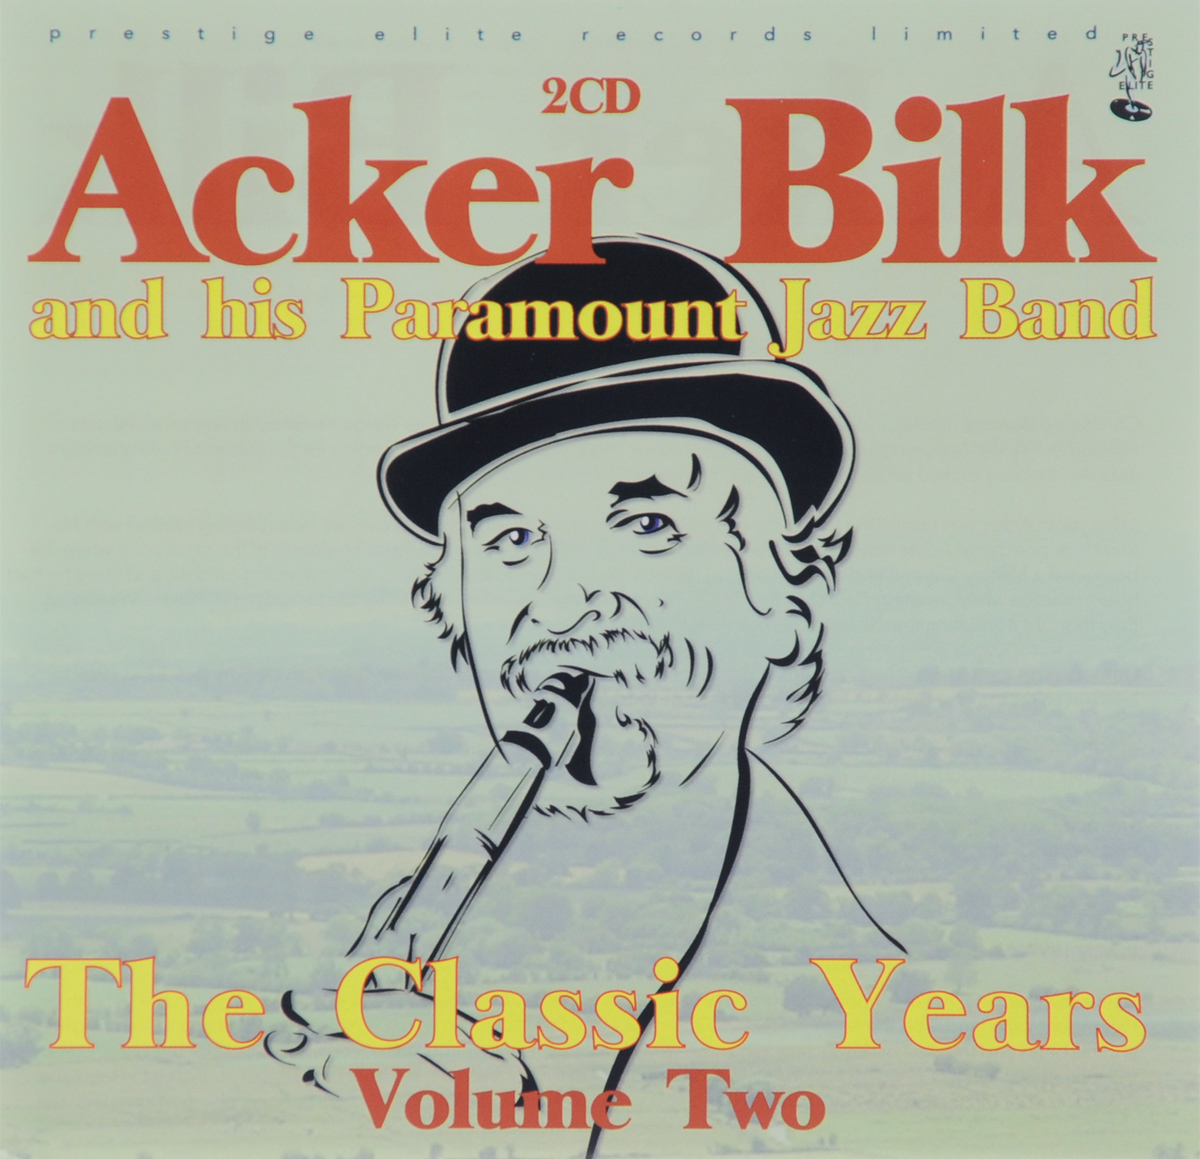 Фото - Acker Bilk and His Paramount Jazz Band Acker Bilk And His Paramount Jazz Band. Classic Years. Volume Two (2 CD) ken colyer s jazzmen кен колайер ken colyer s skiffle group mr acker bilk